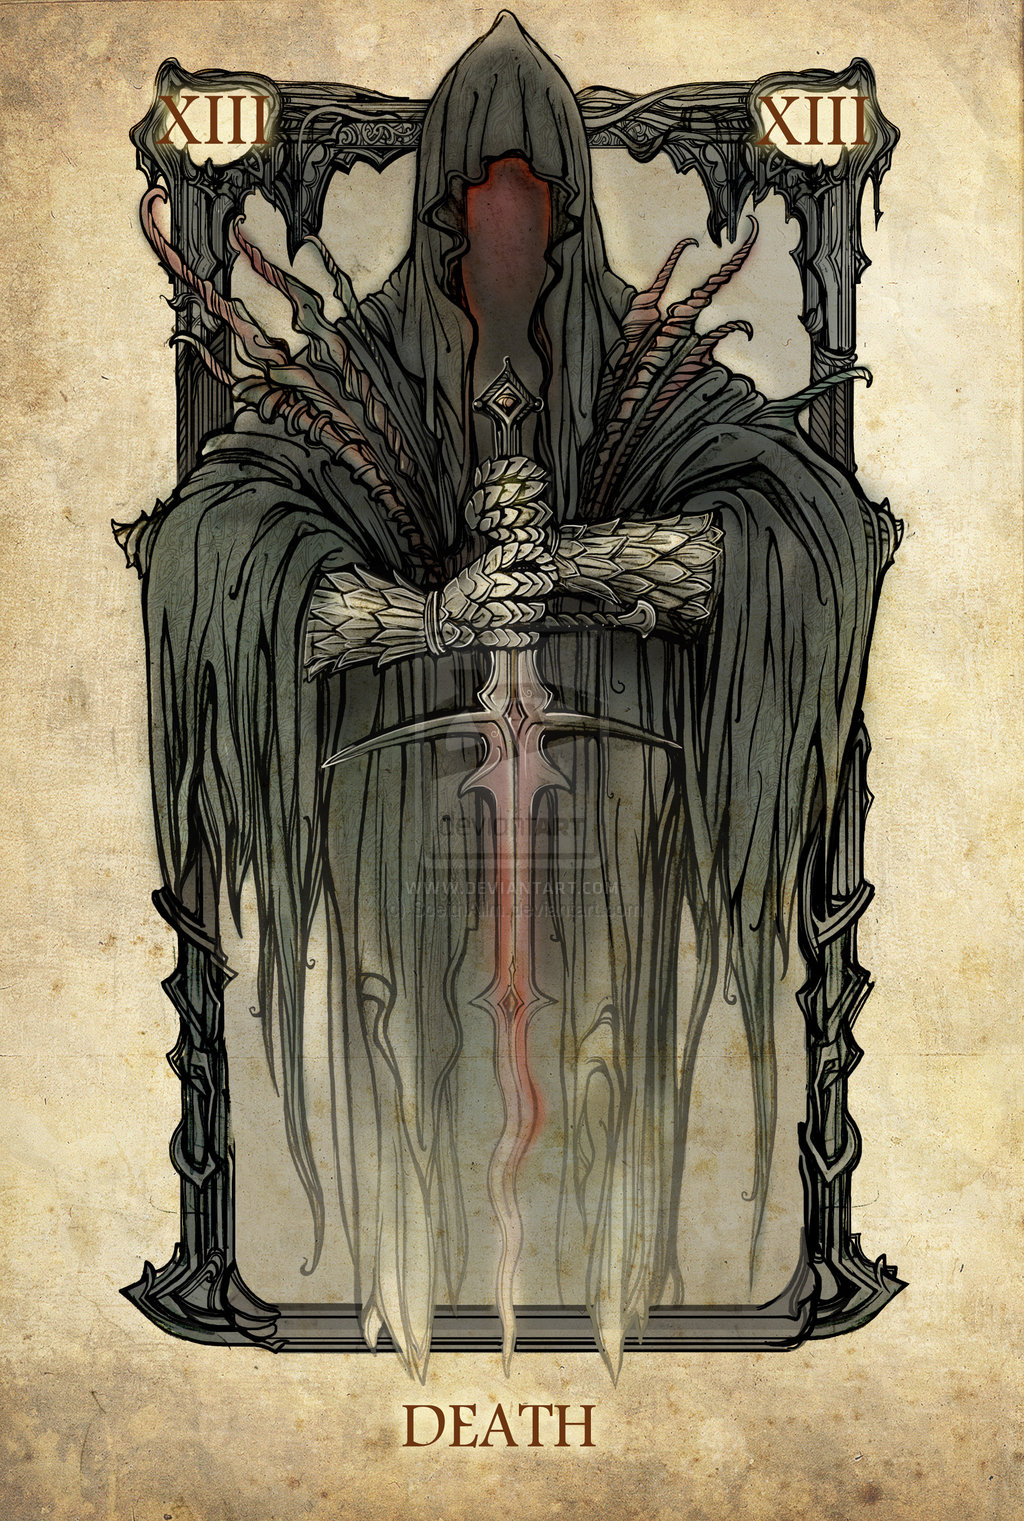 tarot__death_by_sceithailm-d6ey6nu